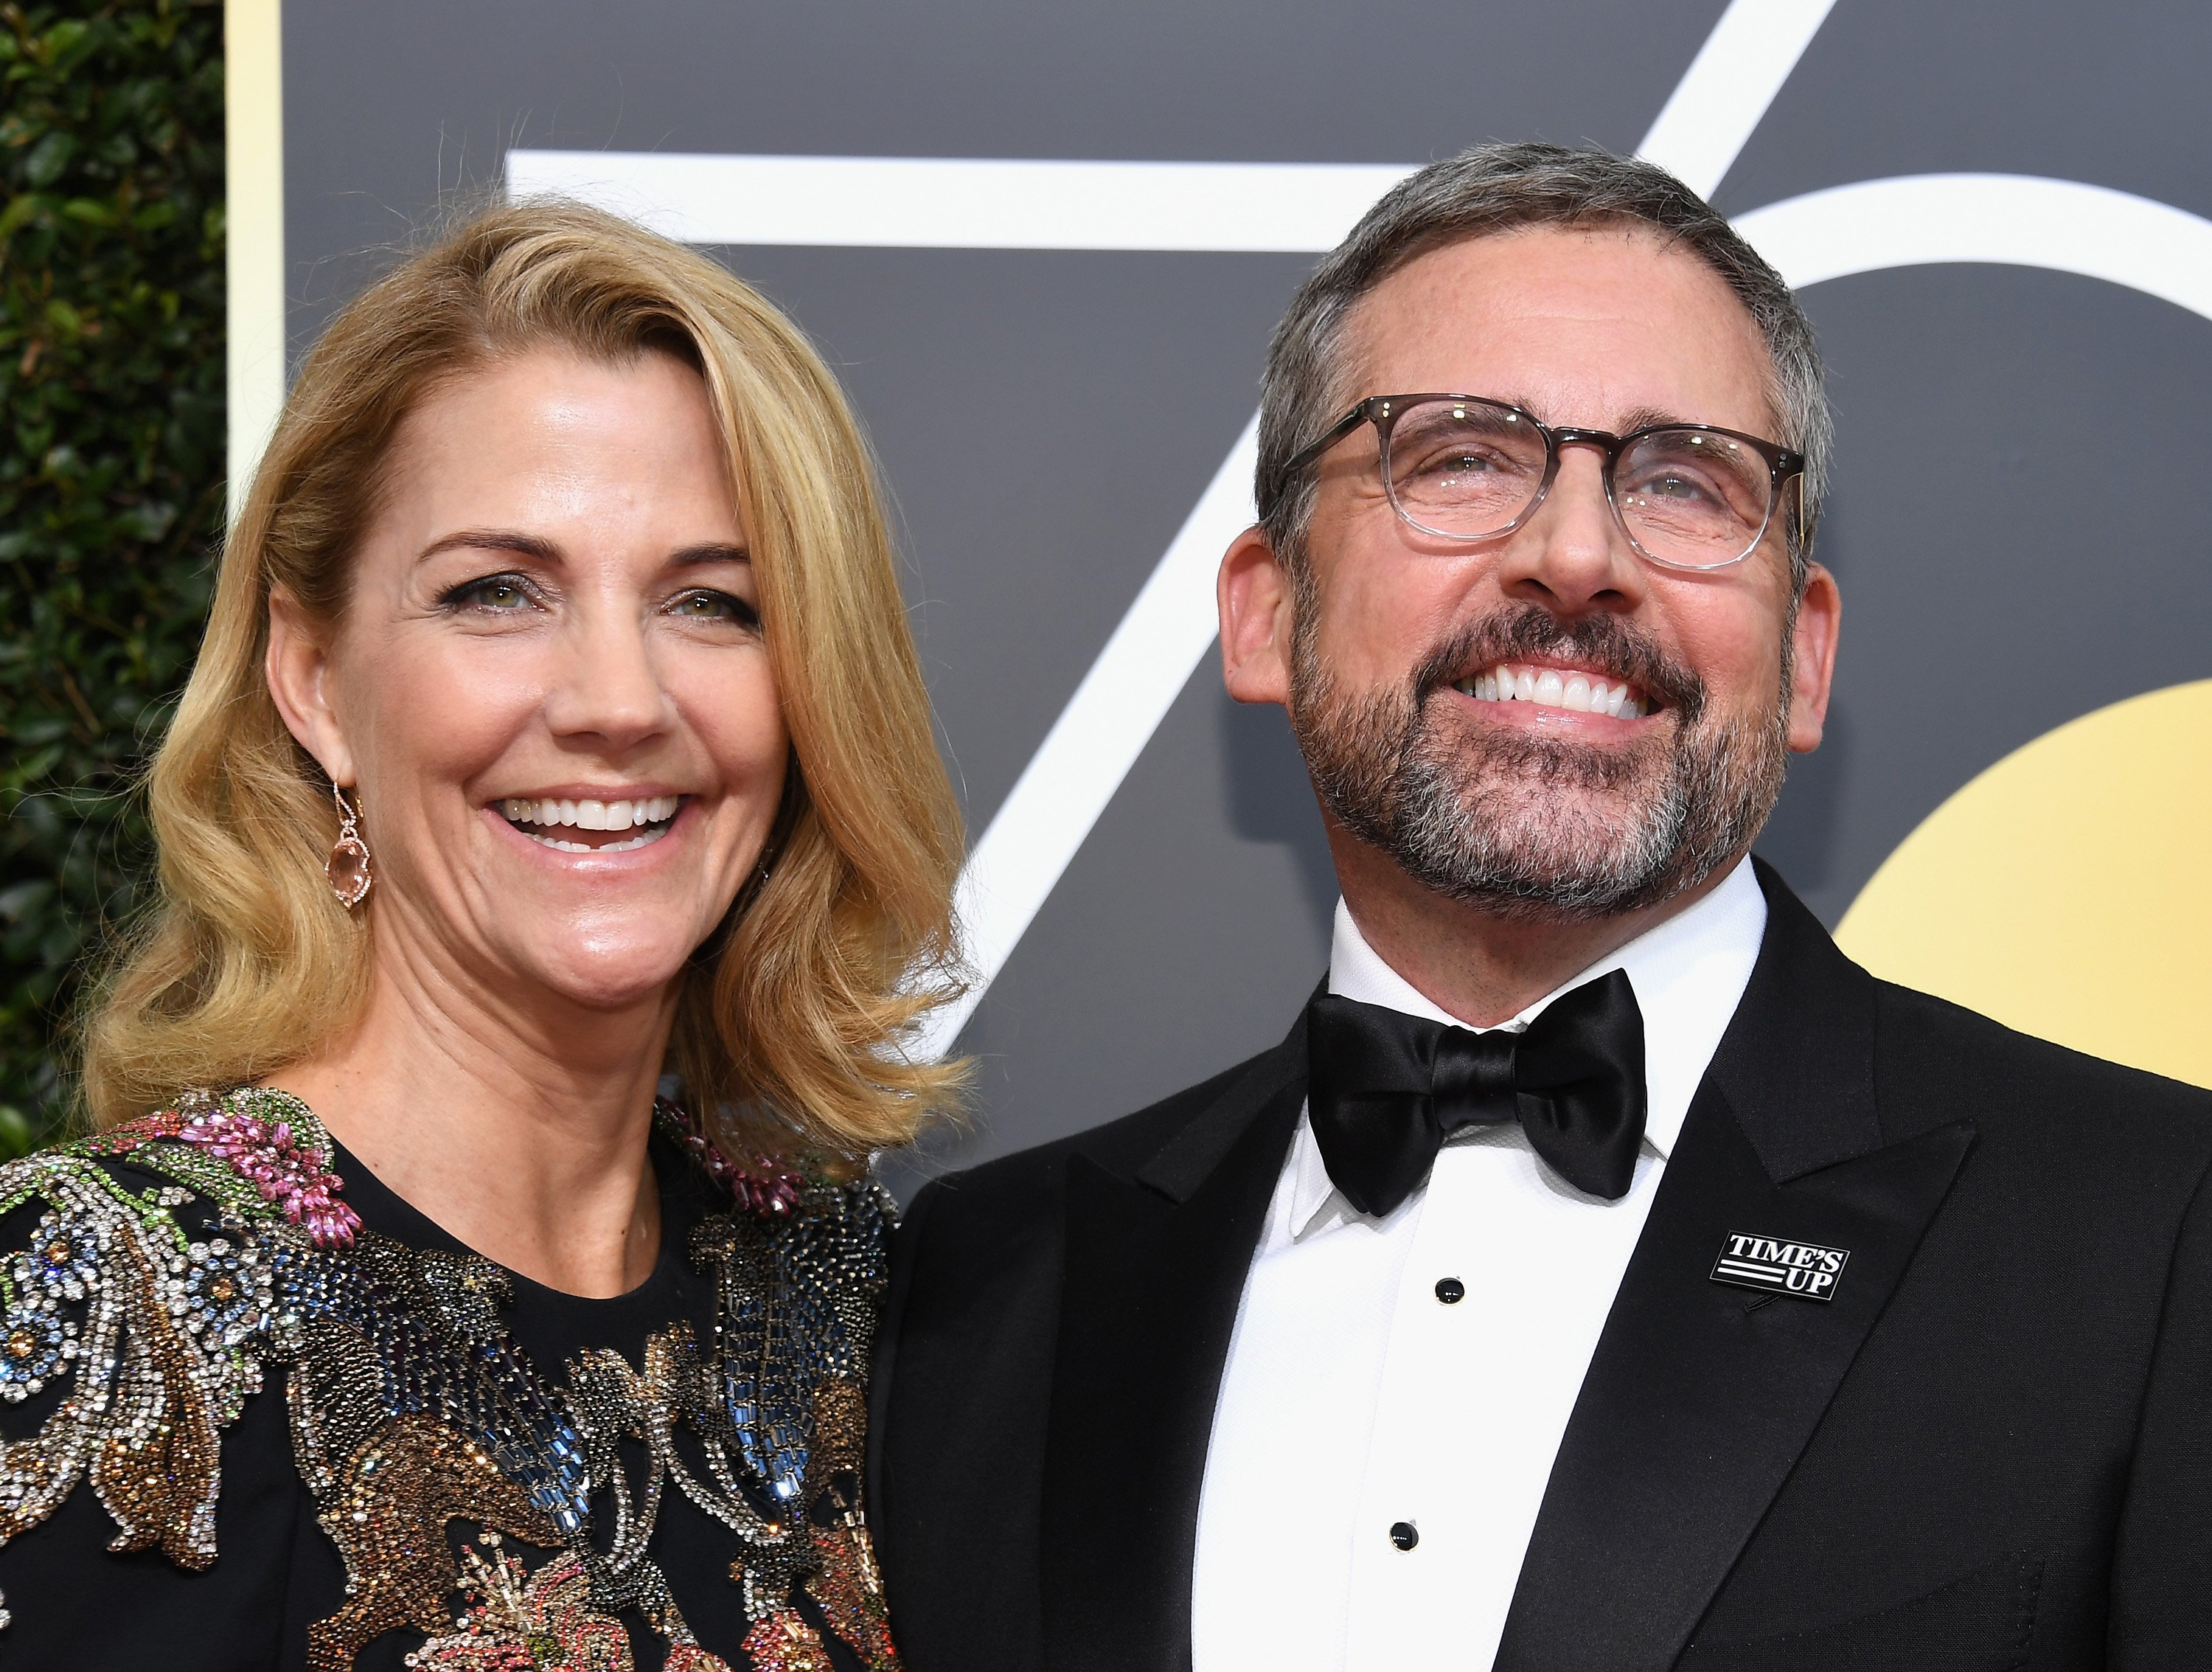 Steve Carell S Wife Nancy Was His Student Meet The Actor S Spouse And Mom Of His Two Kids Join facebook to connect with anne élisabeth kerdrel and others you may know. steve carell s wife nancy was his